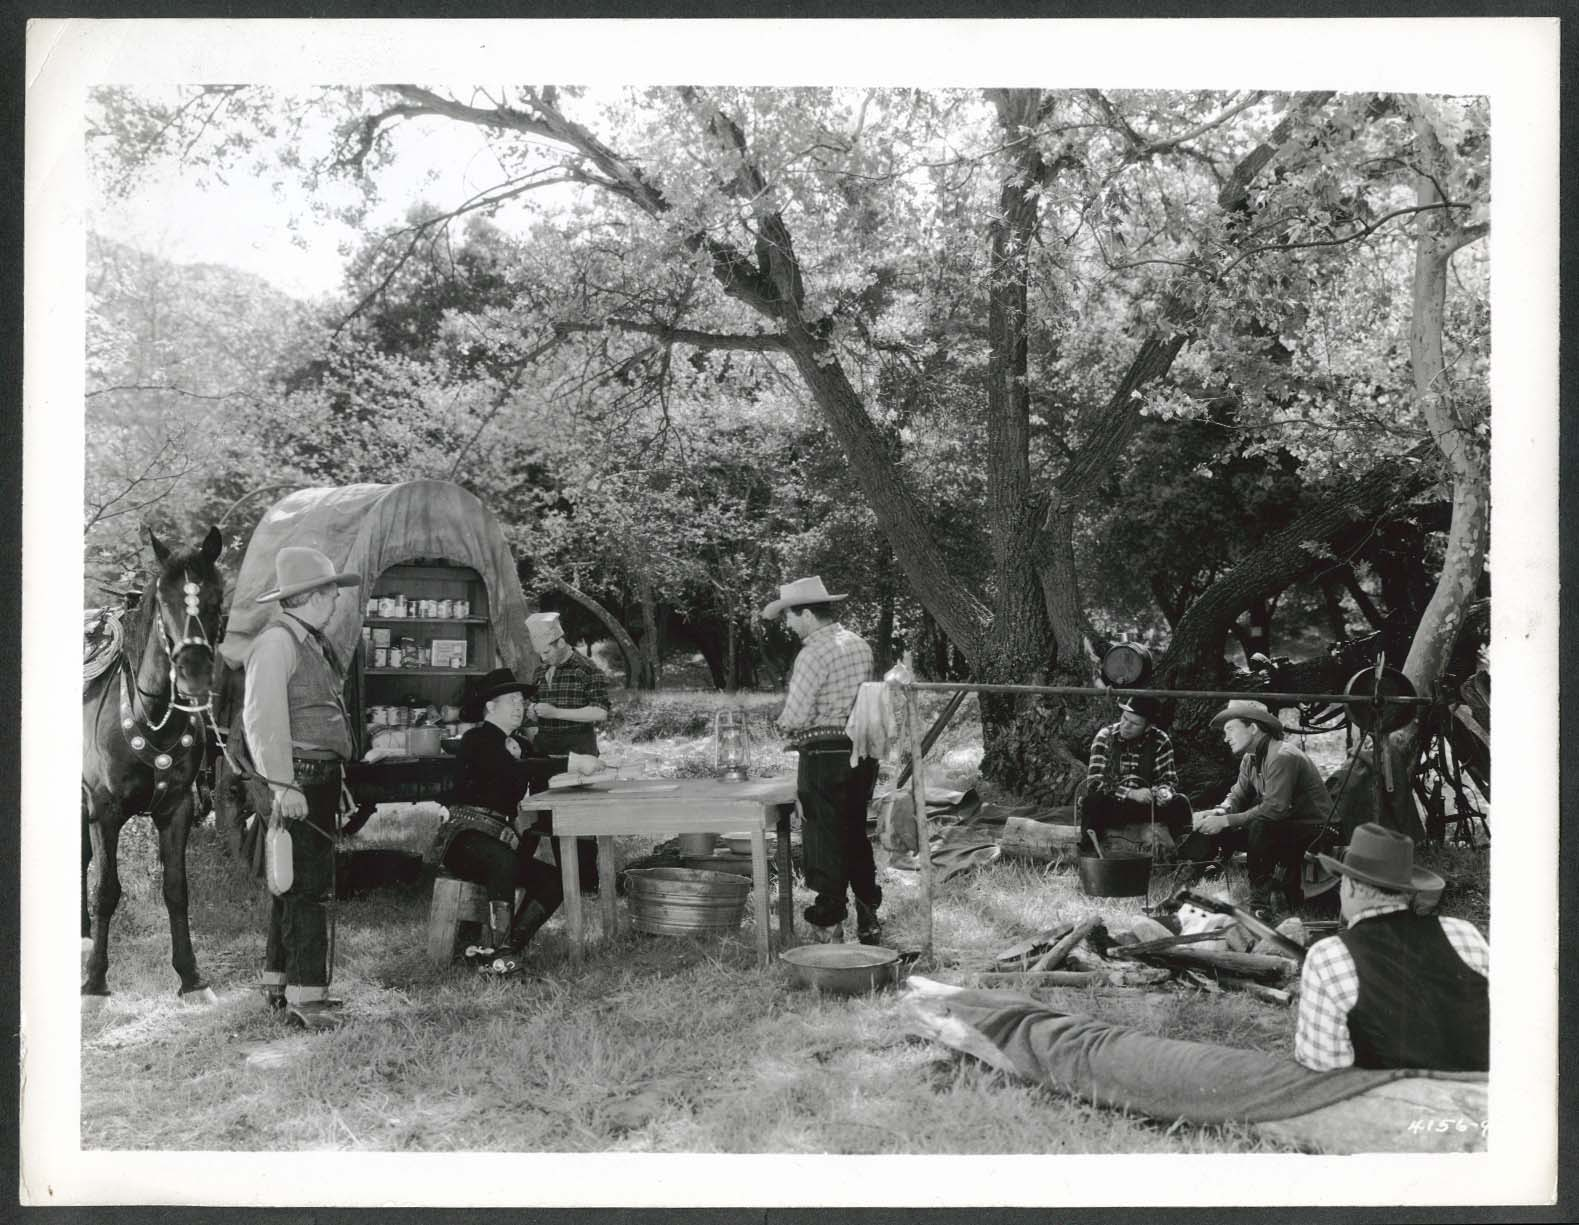 Image for Tim McCoy at campsite 8x10 photograph 1940s